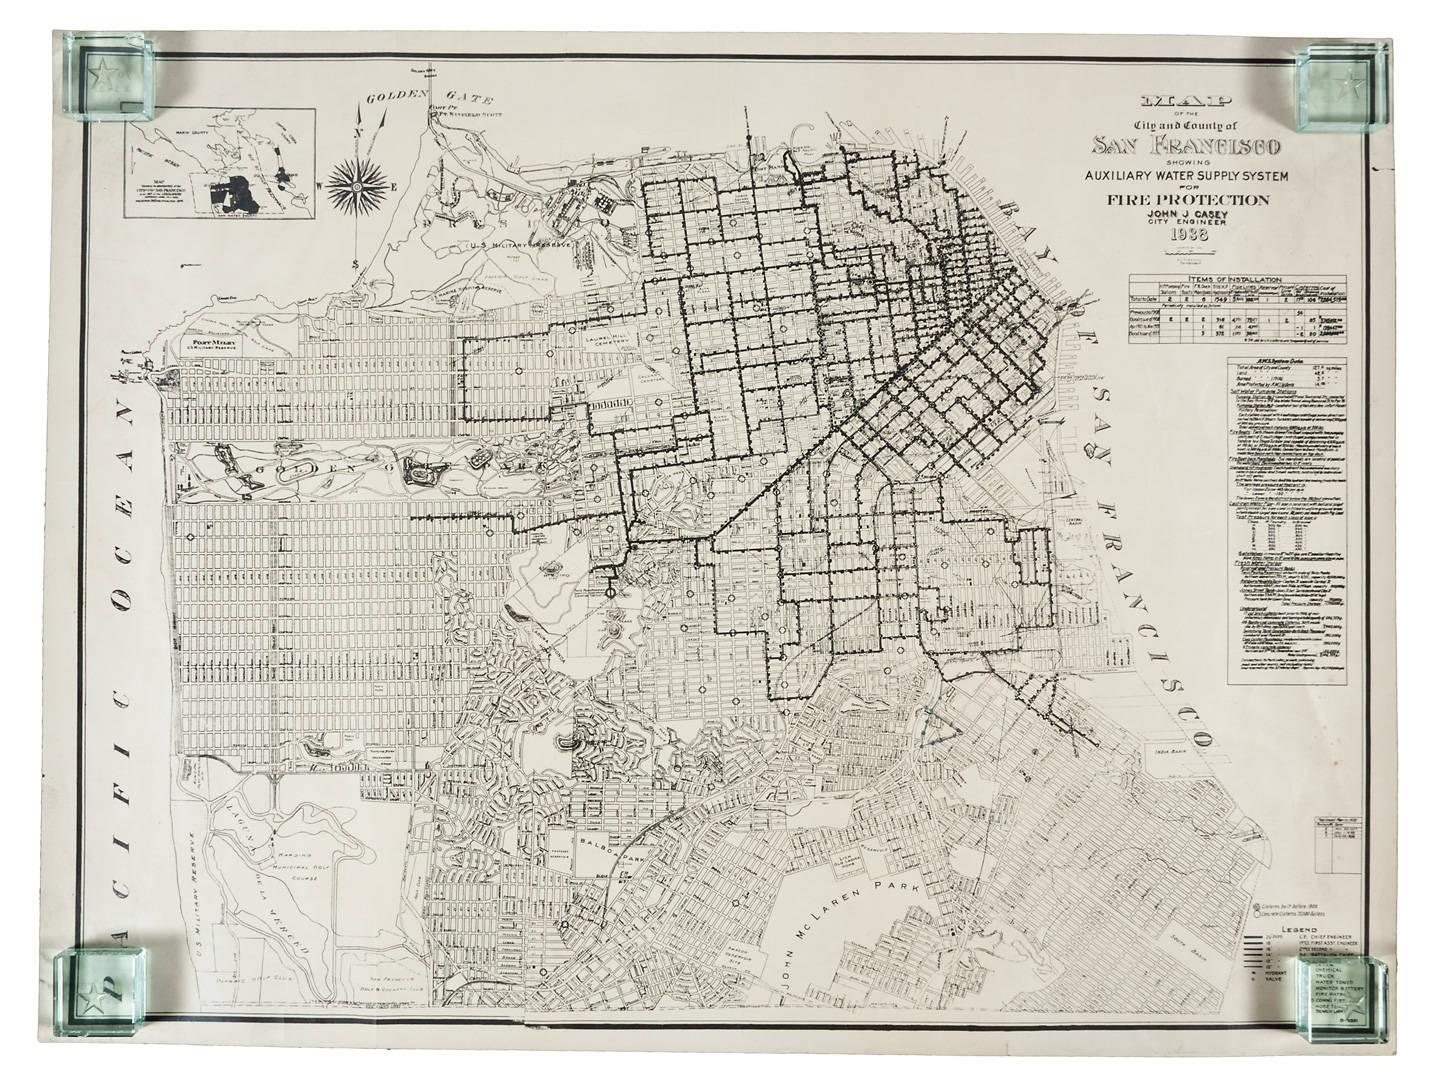 Map of the City and County of San Francisco Showing Auxiliary Water